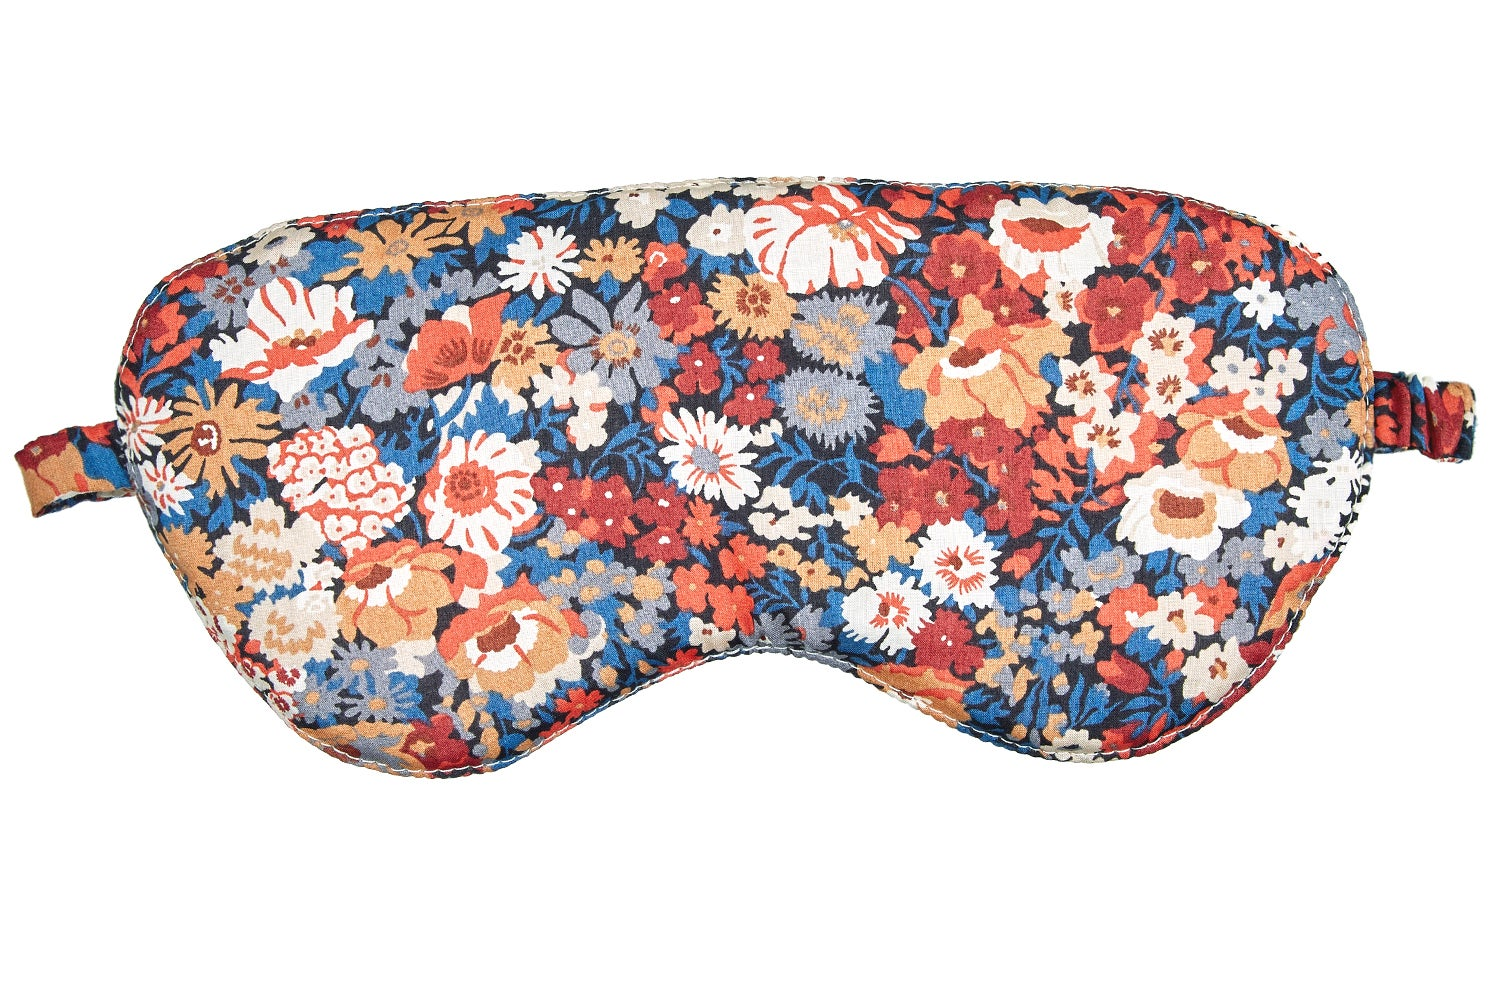 Image of Sleep mask * Thesa